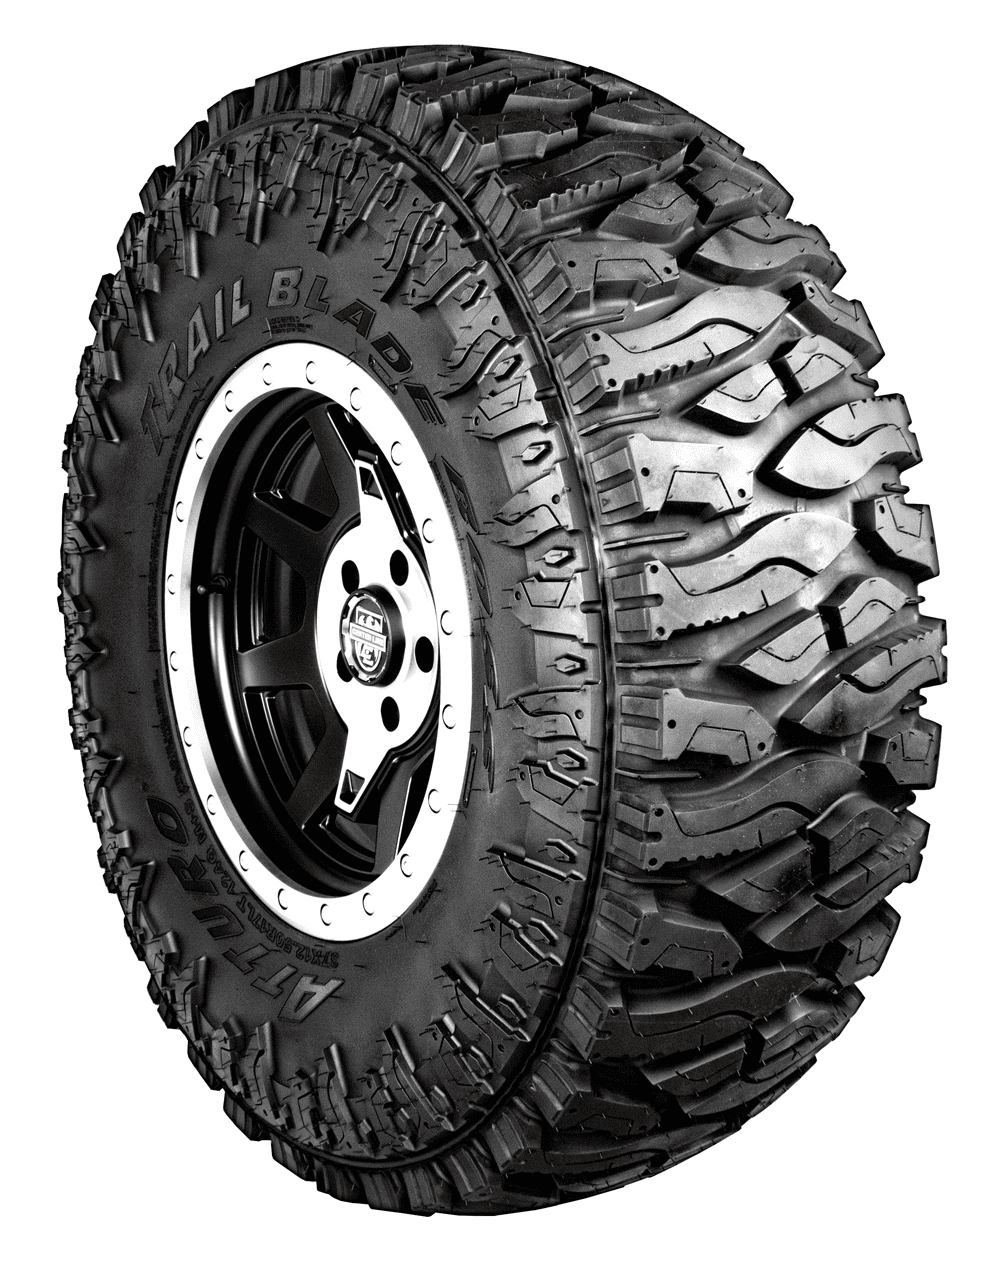 Atturo Trail Blade Boss Off-Road Tire